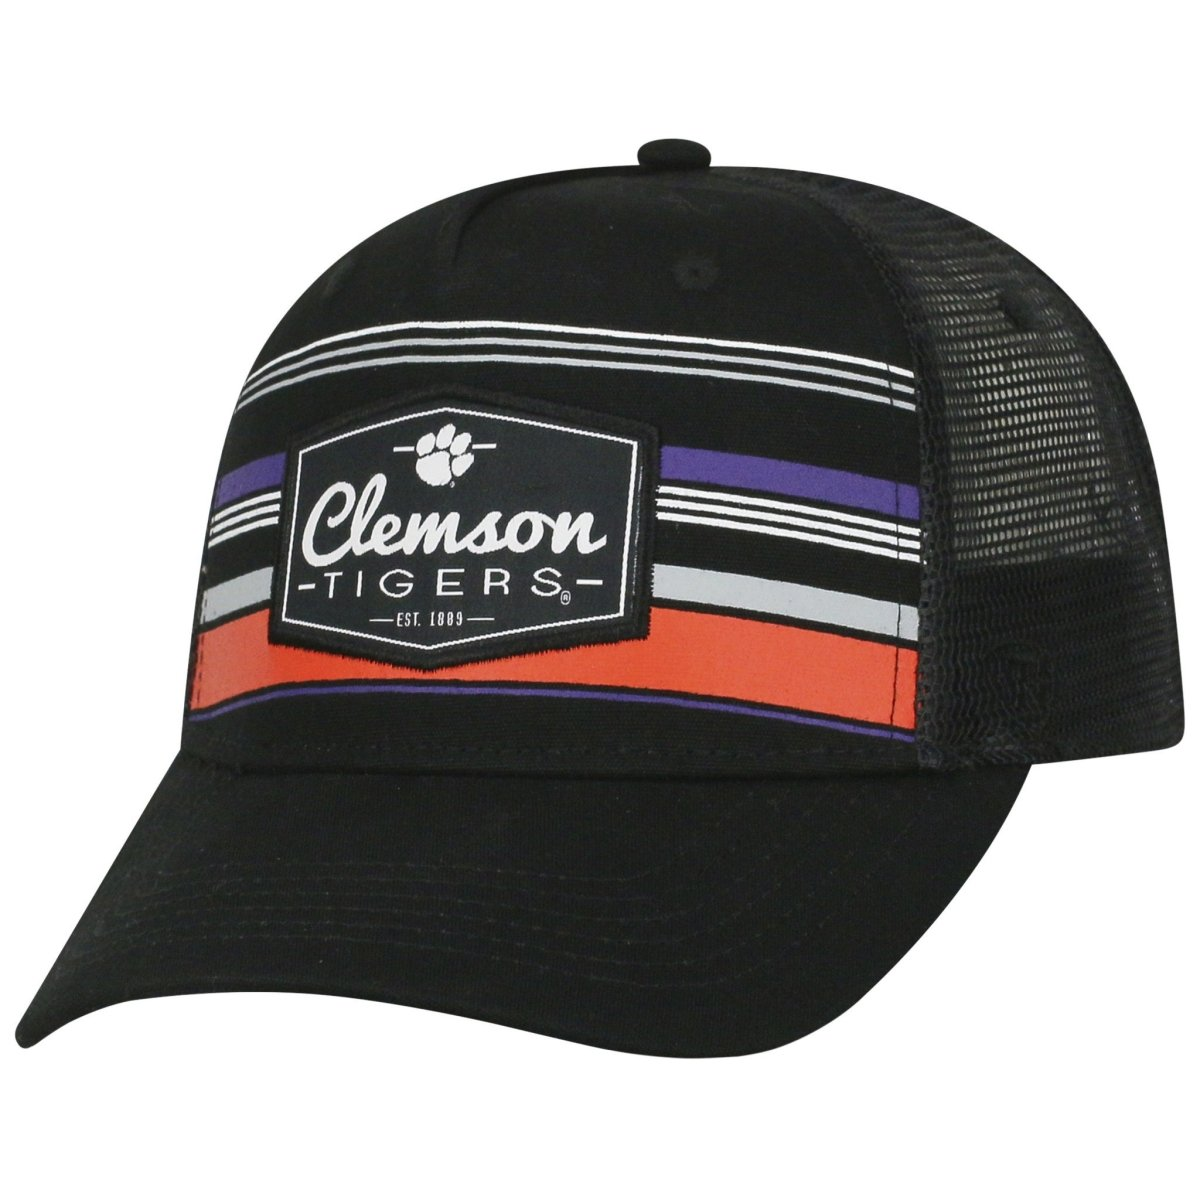 Clemson Tigers Top of the World Branded Trucker Adjustable Snapback Hat - Black - Mr. Knickerbocker